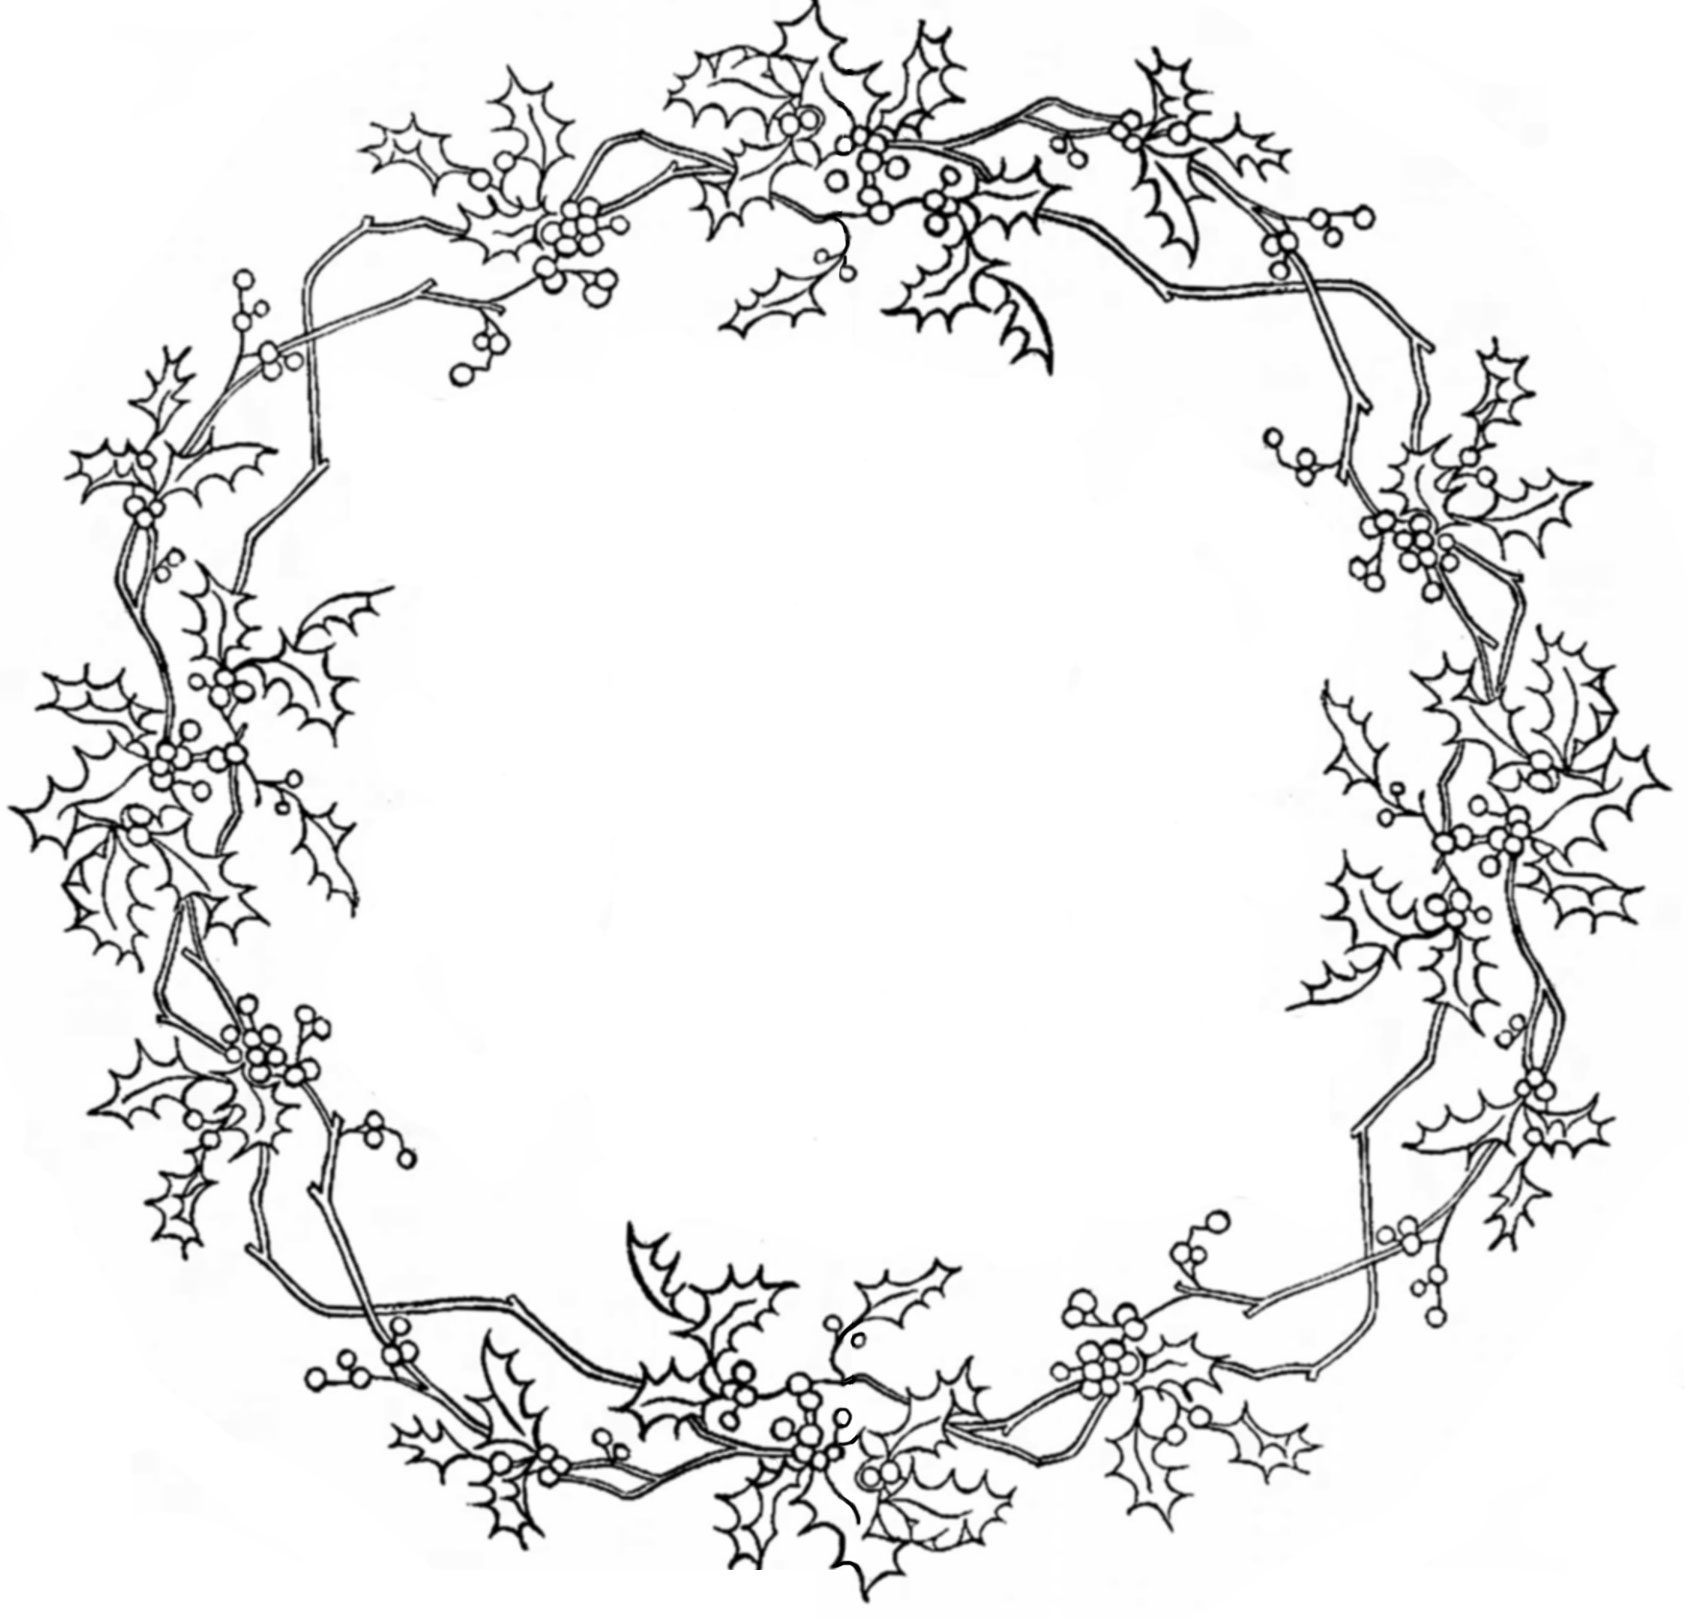 Antique Embroidery Designs Poinsettias And Holly Q Is For Quilter